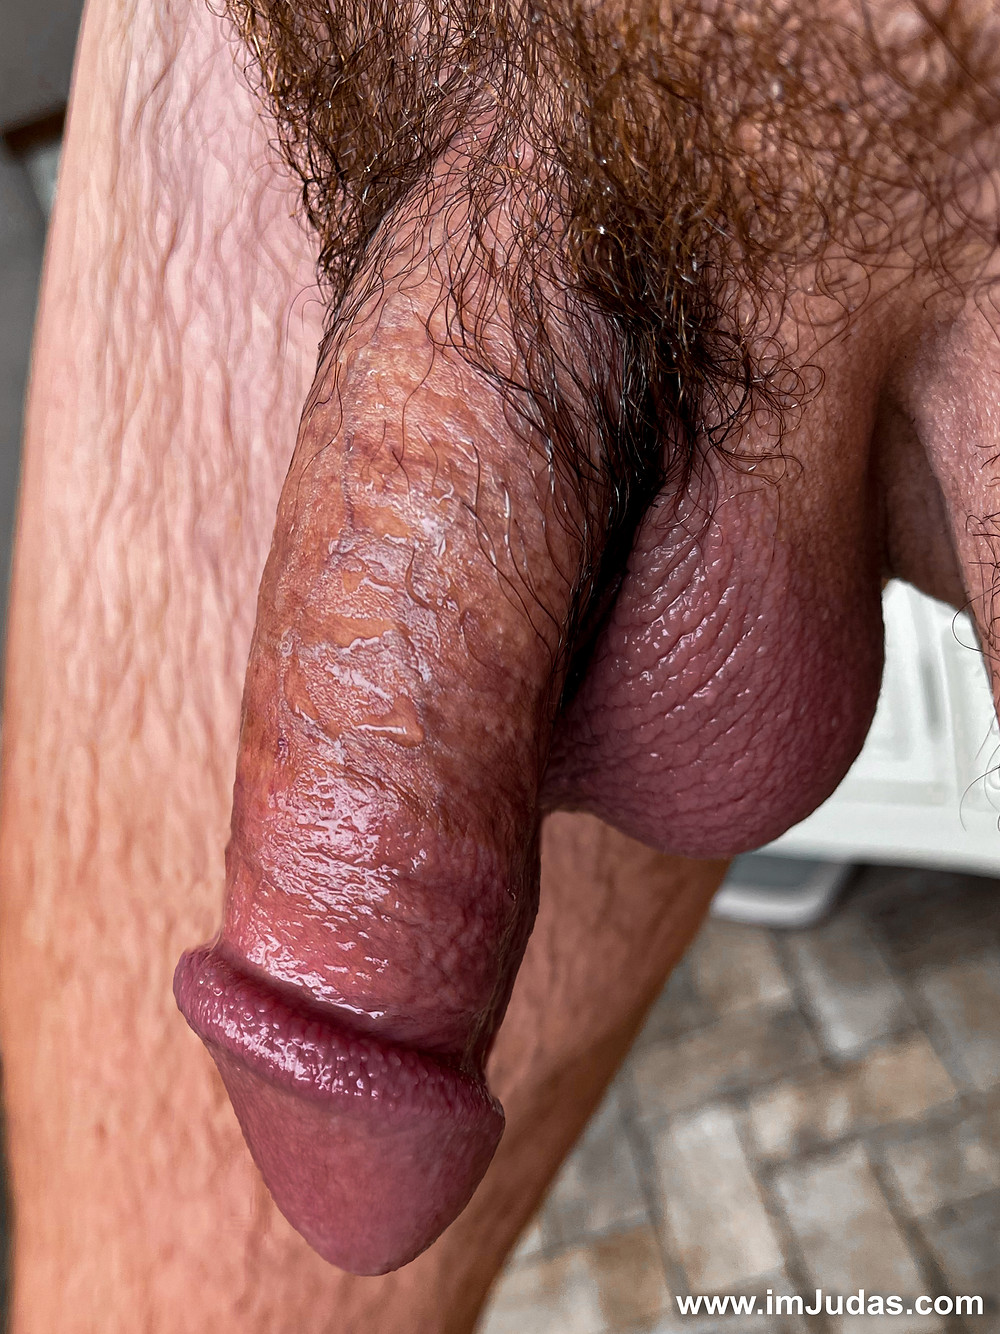 My pubic hair is a mixture of black, brown, orange, and red.